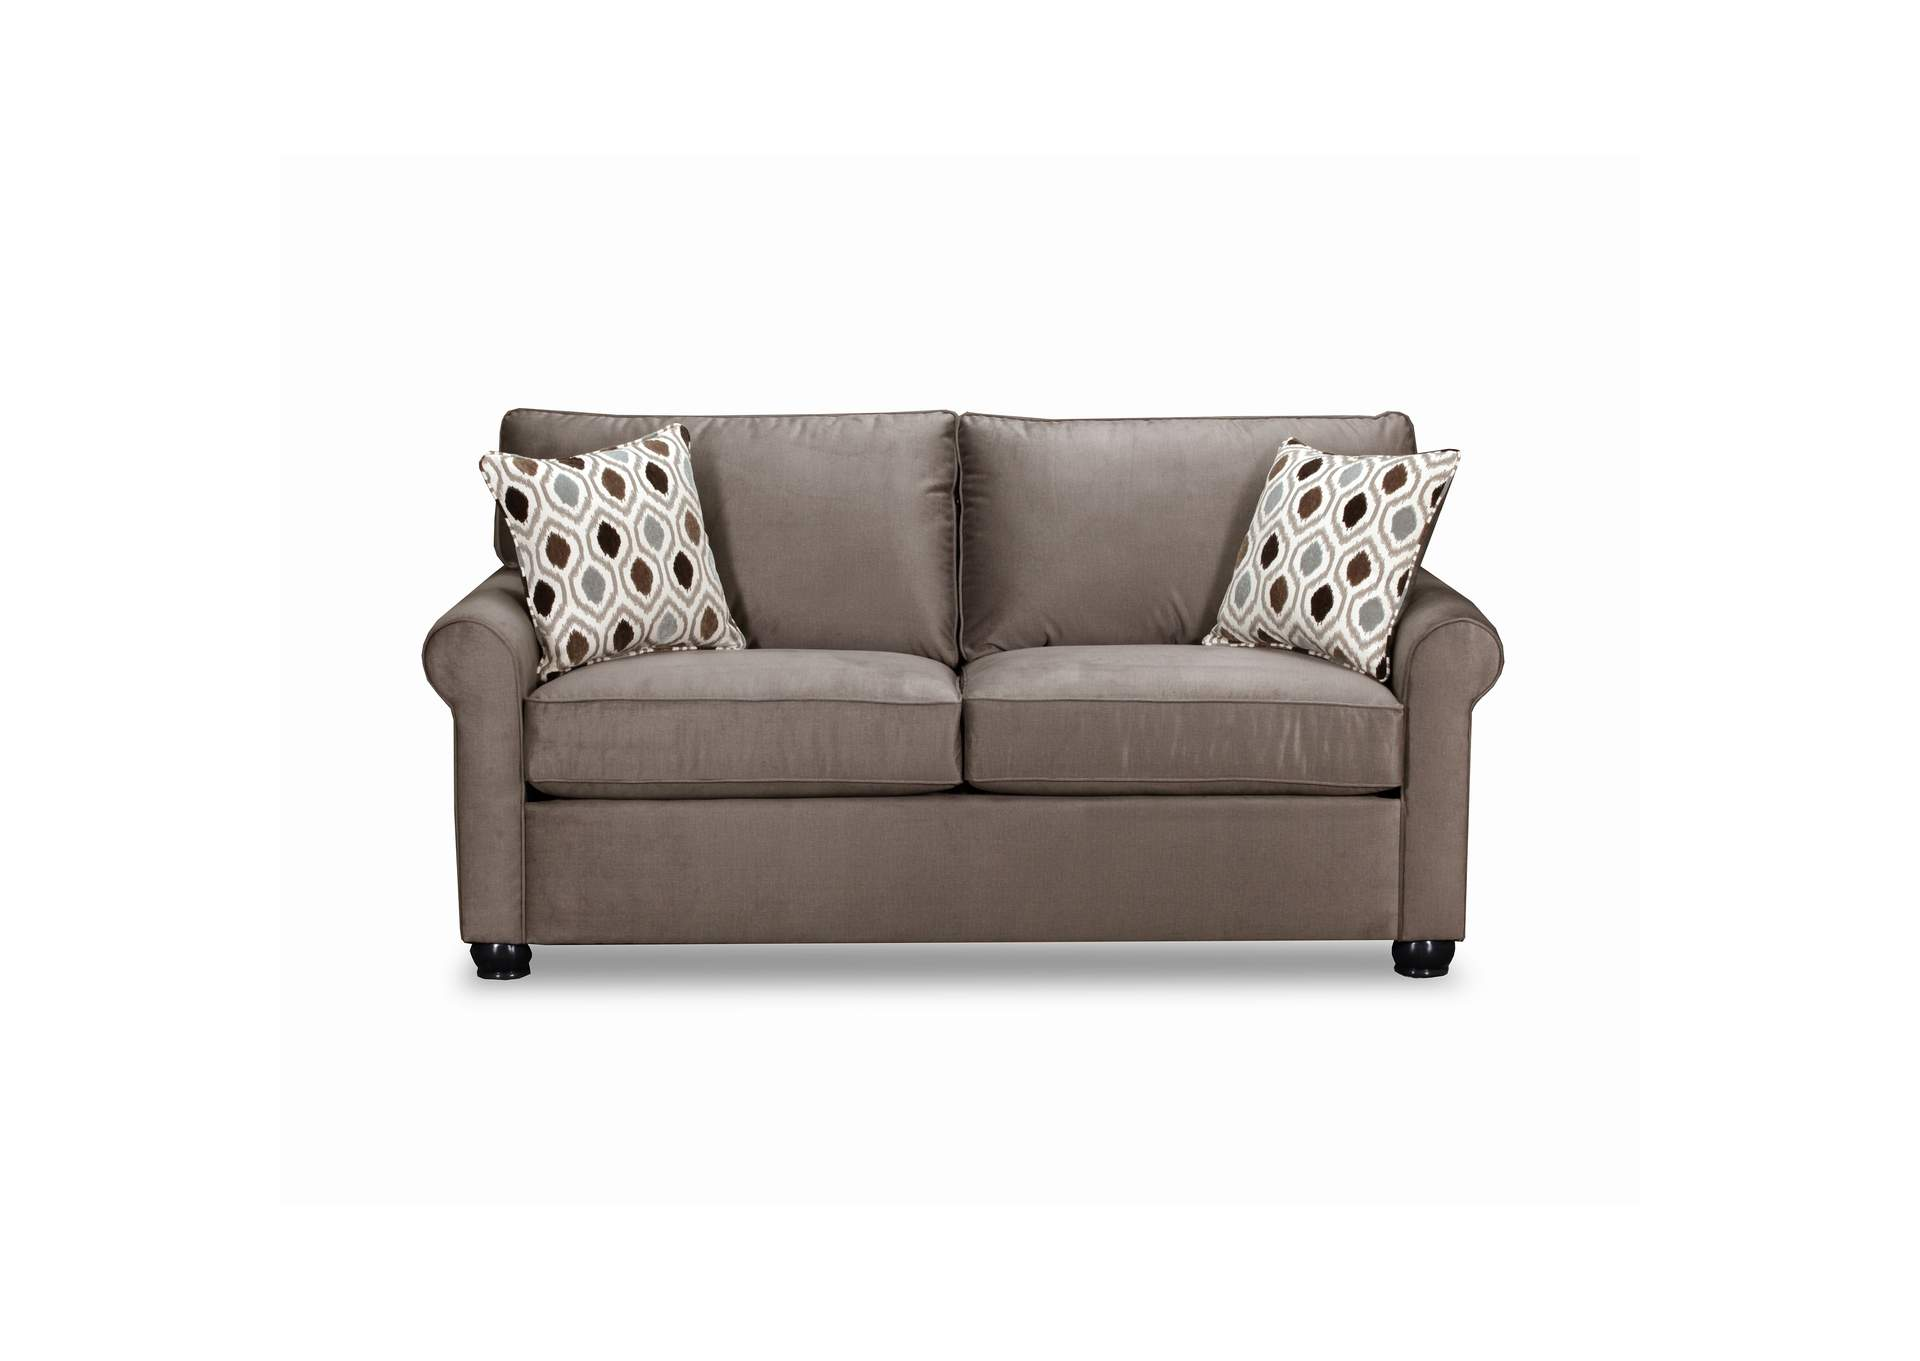 1530 Loveseat